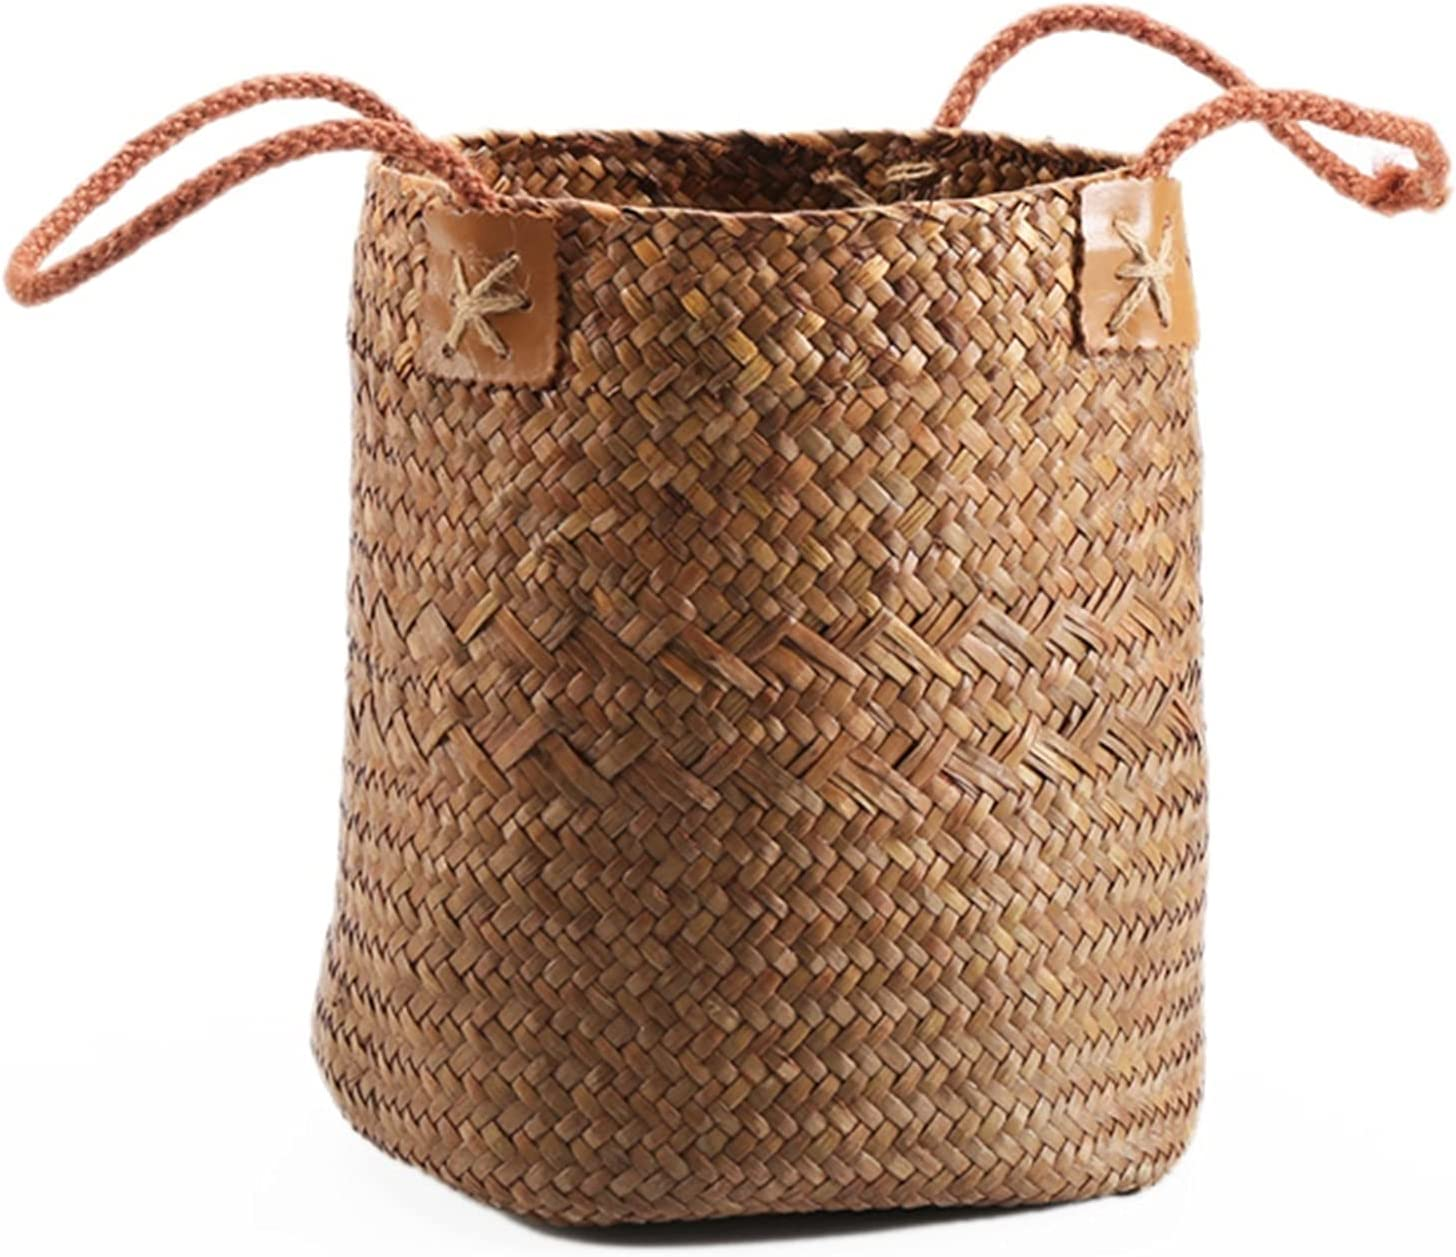 lxm Woven Seagrass Belly Basket Laundr Storage for Max 47% OFF Style Quality inspection Nordic